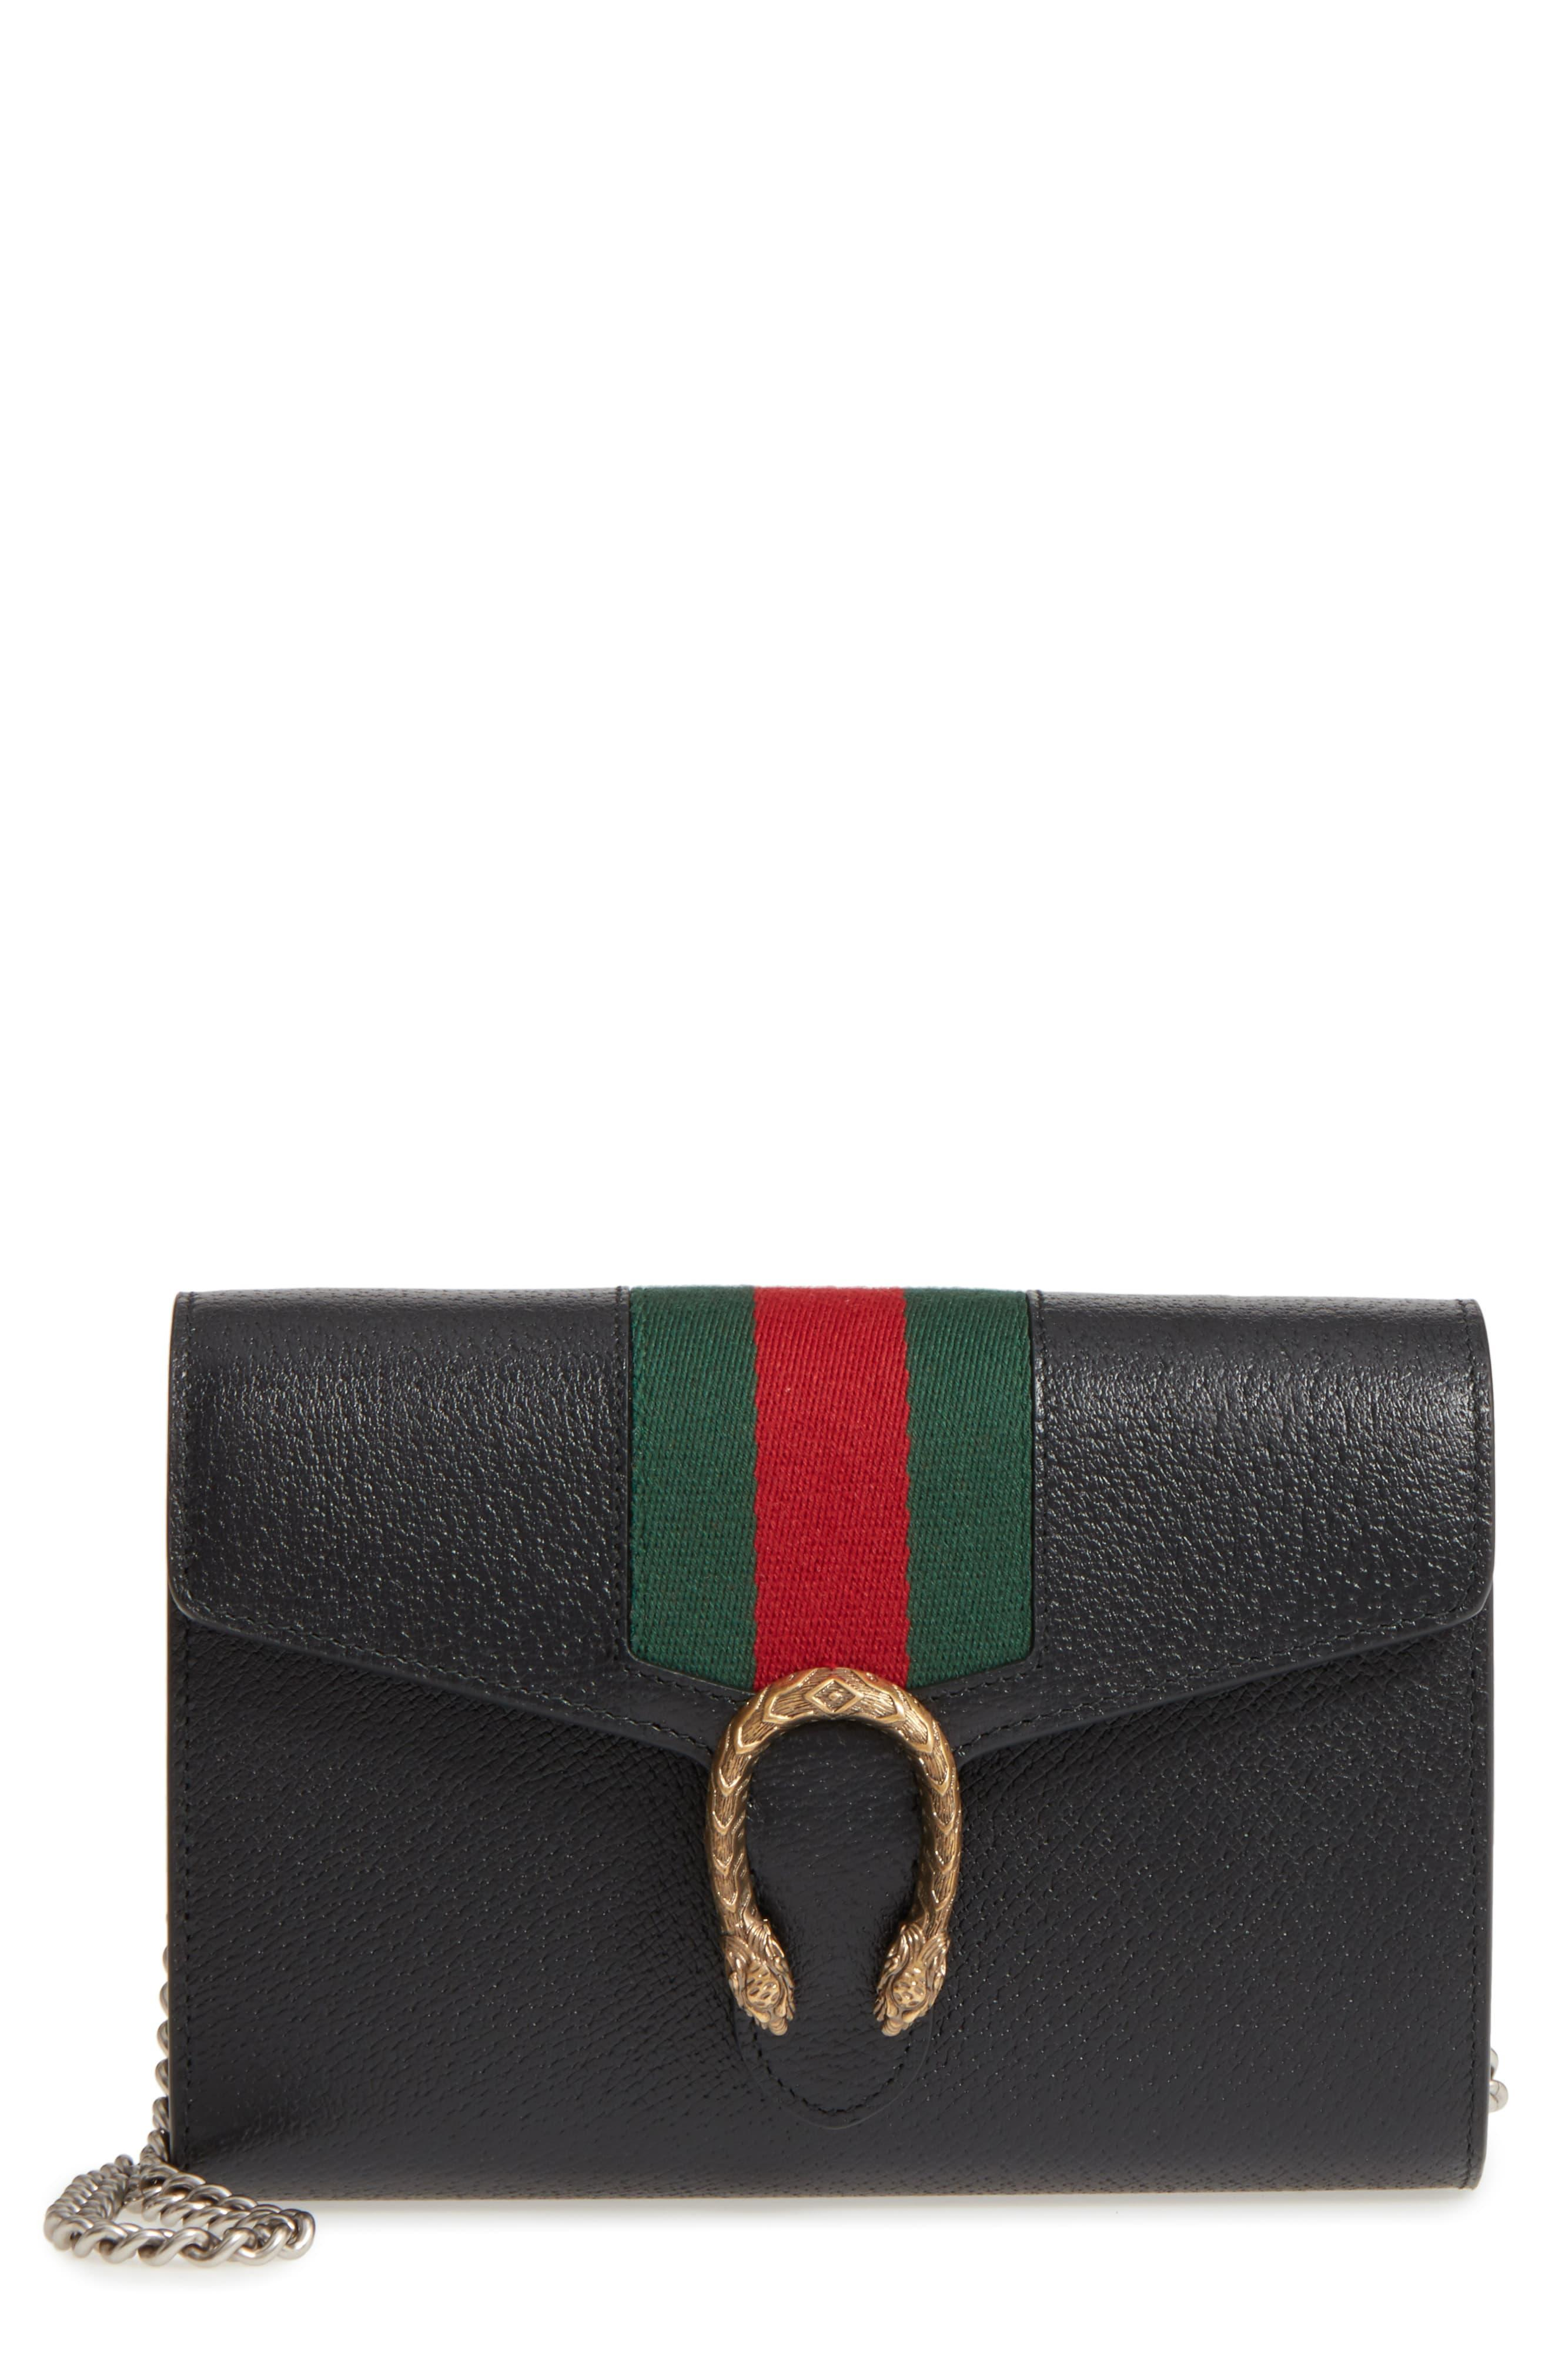 d5abbc283551 Gucci Dionysus Web Stripe Leather Wallet On A Chain - in Black - Lyst